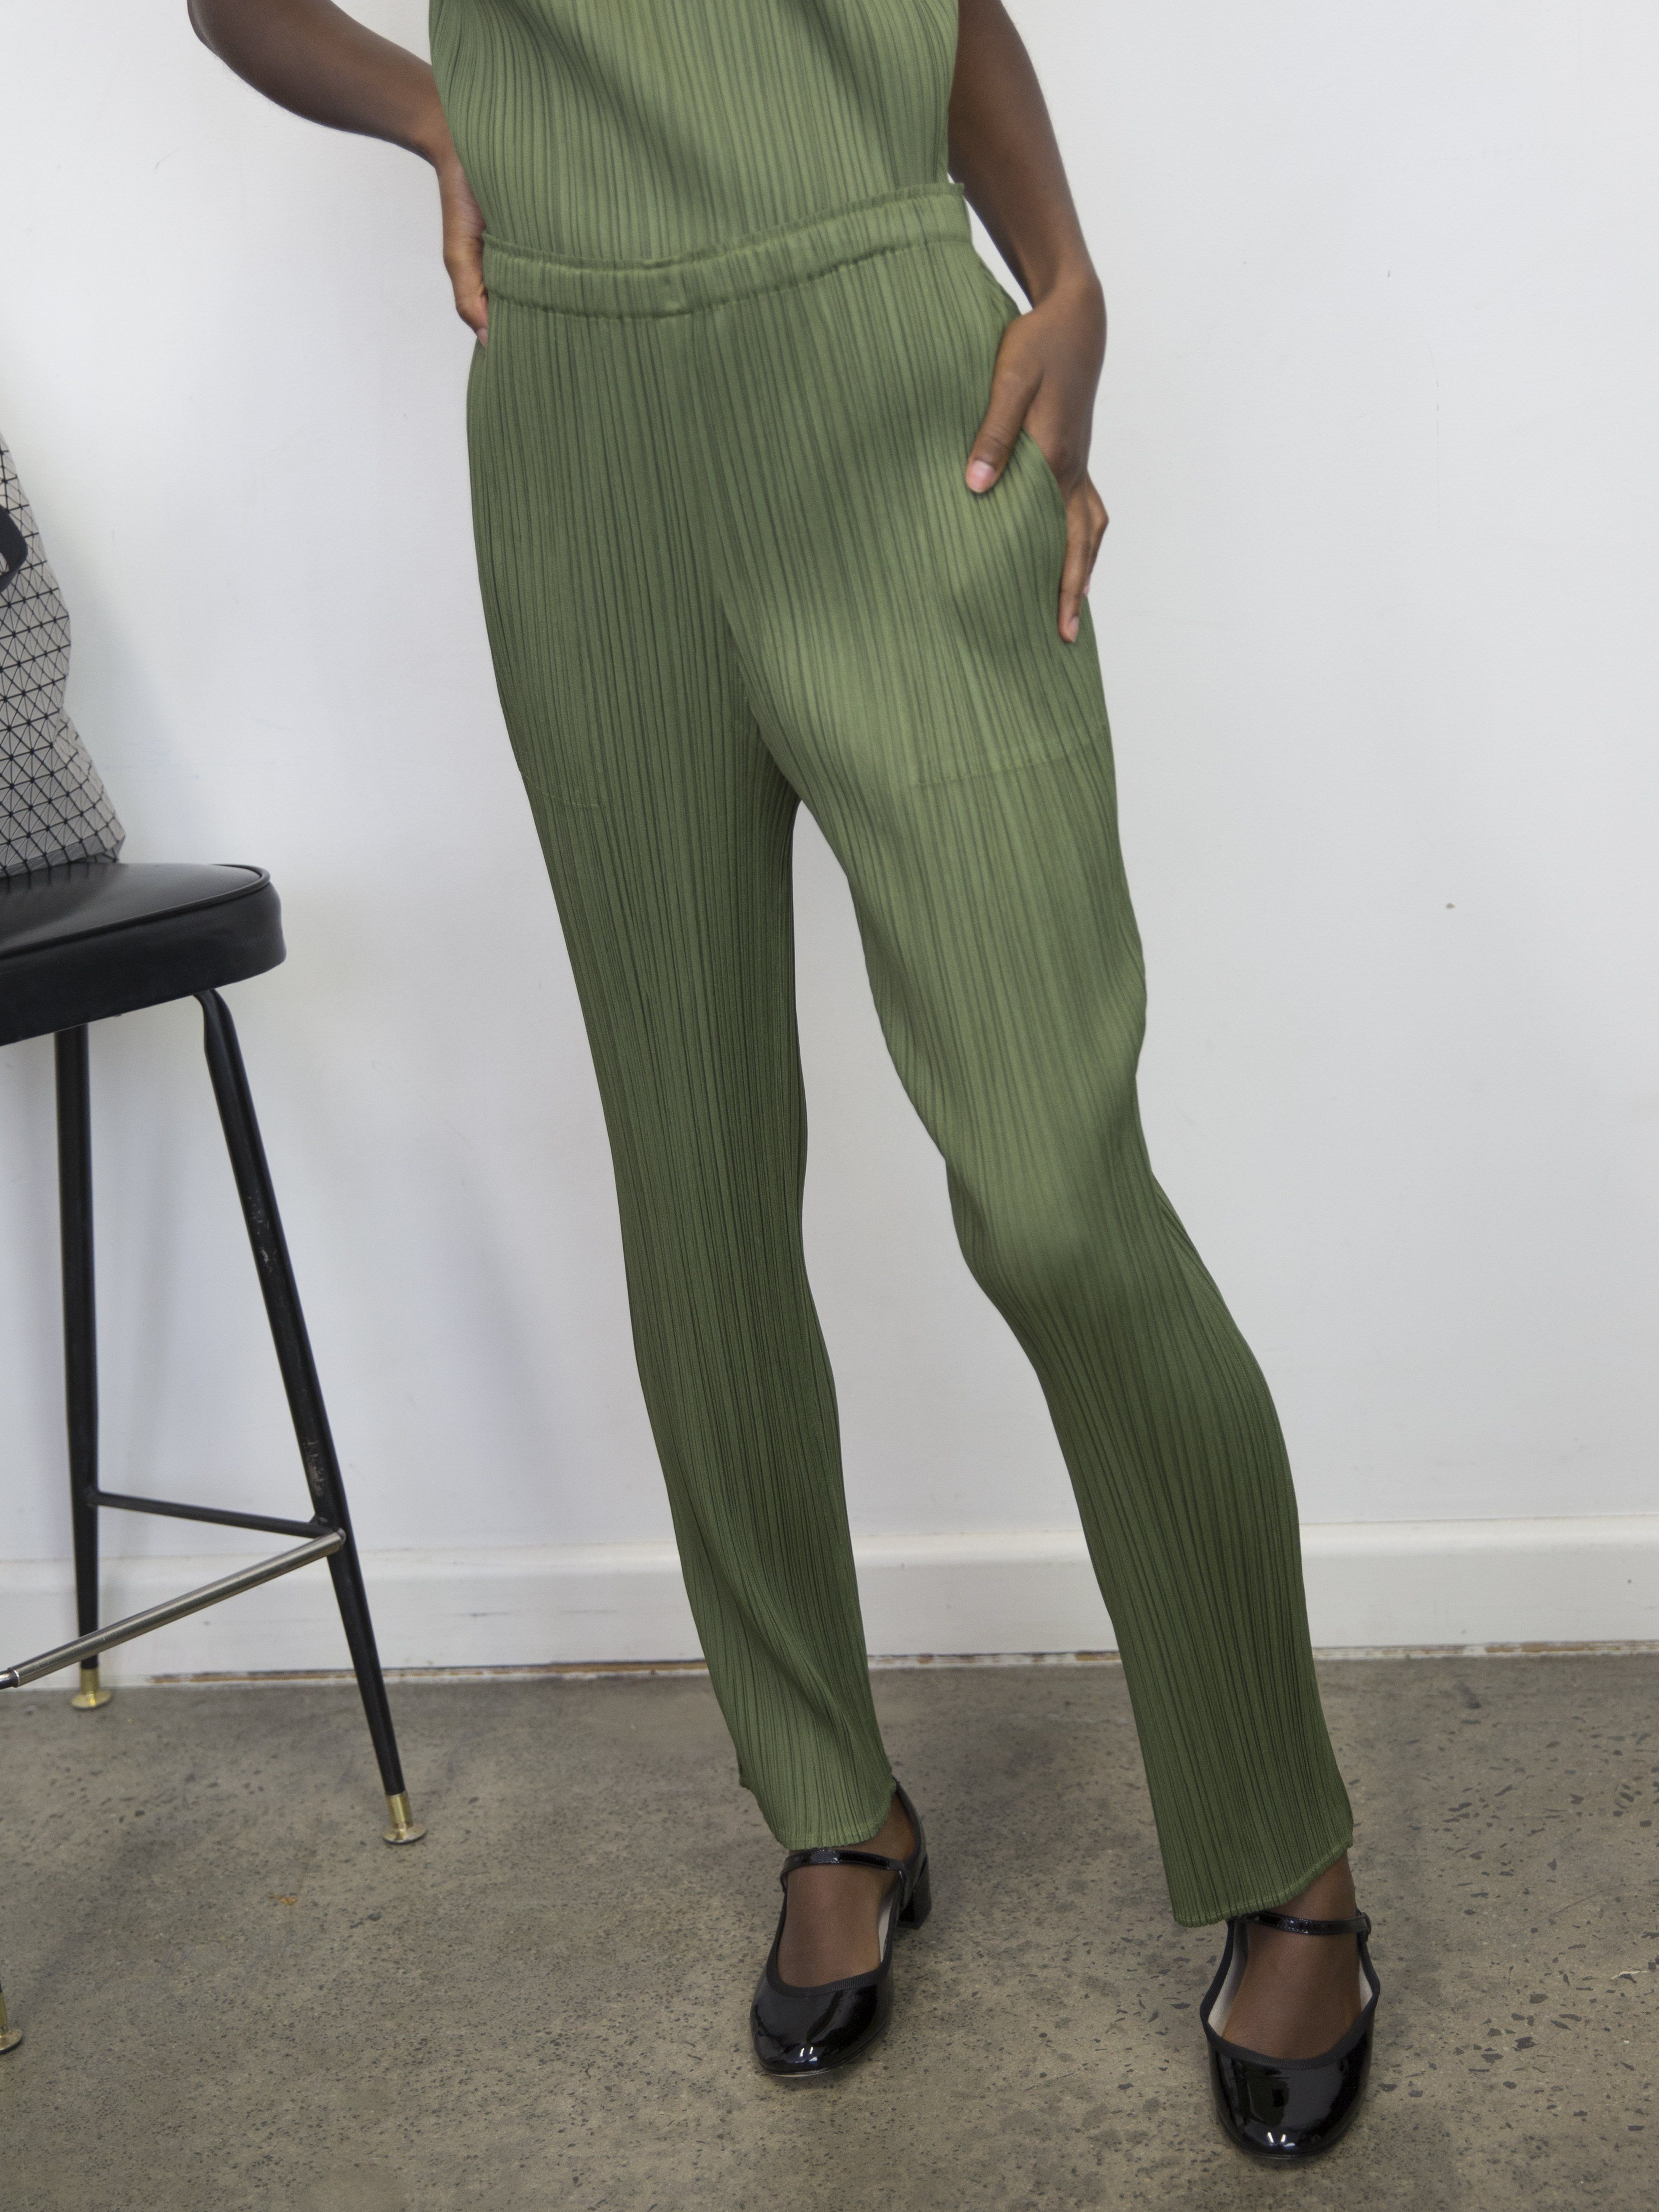 07eabe712a92 PLEATS PLEASE ISSEY MIYAKE New Colourful Basics II Pants